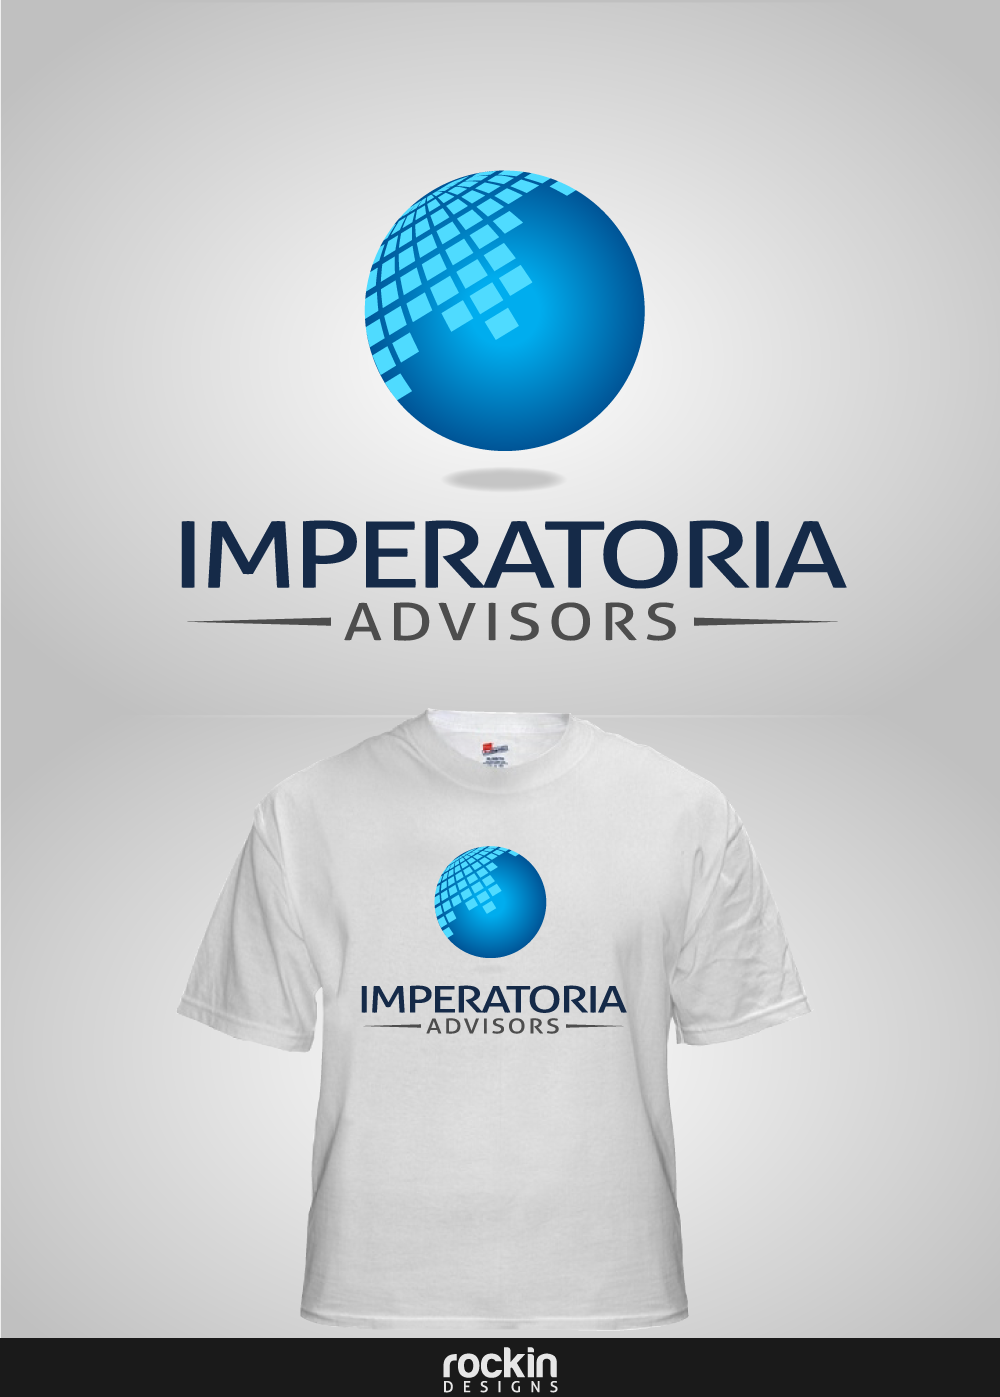 Logo Design by rockin - Entry No. 94 in the Logo Design Contest Unique Logo Design Wanted for Imperatoria Advisors.